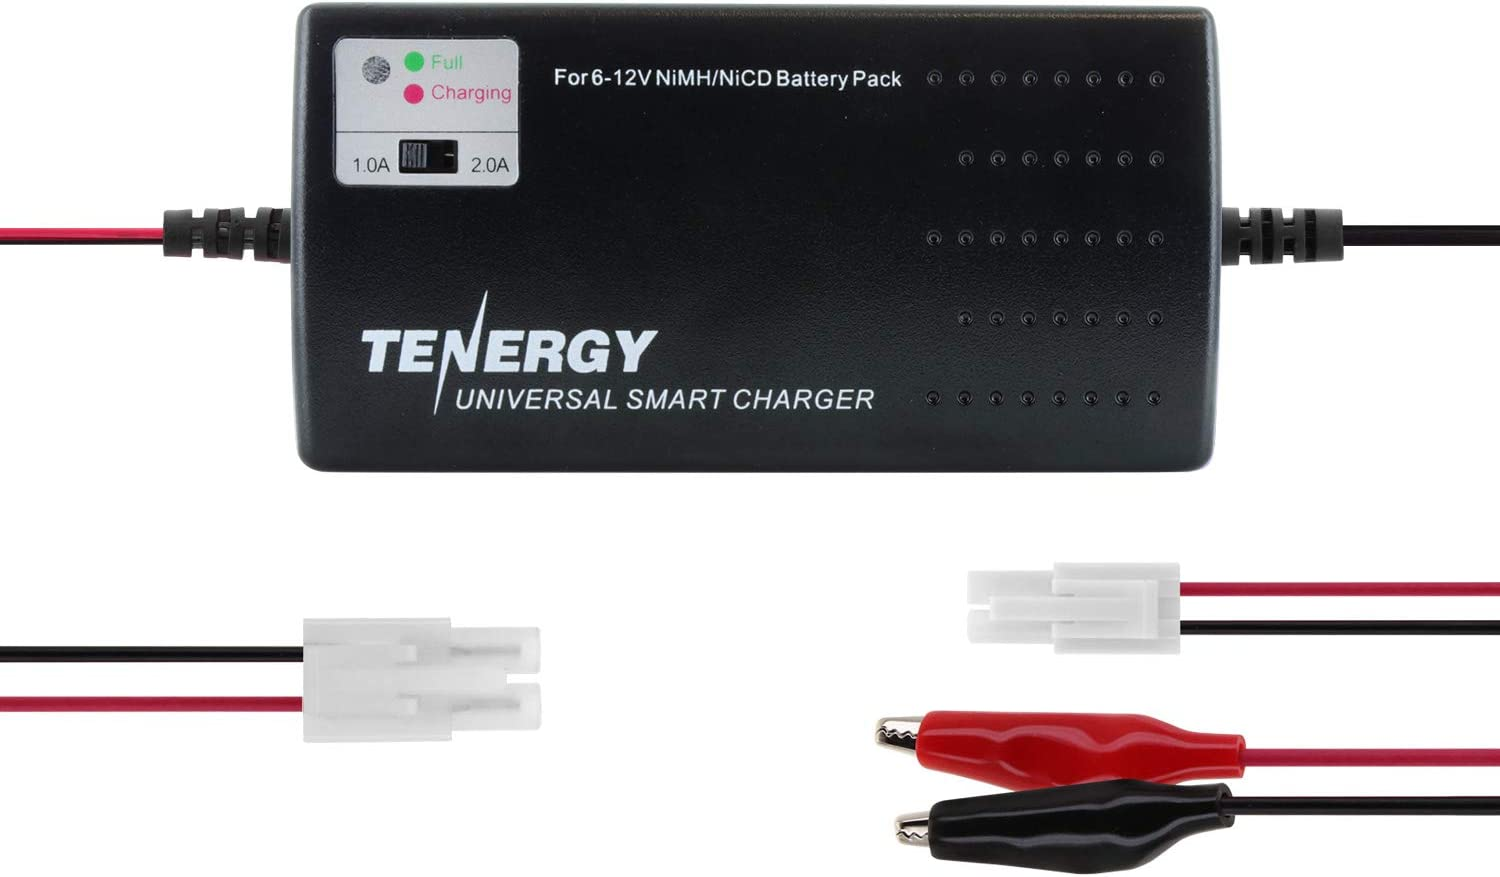 Tenergy Universal RC Battery Charger for NiMH/NiCd 6V-12V Battery Packs, Fast Charger for RC Car, Airsoft Batteries, Compatible with Standard Size Tamiya/Mini Tamiya/Alligator Clips Connectors 01025: Toys & Games